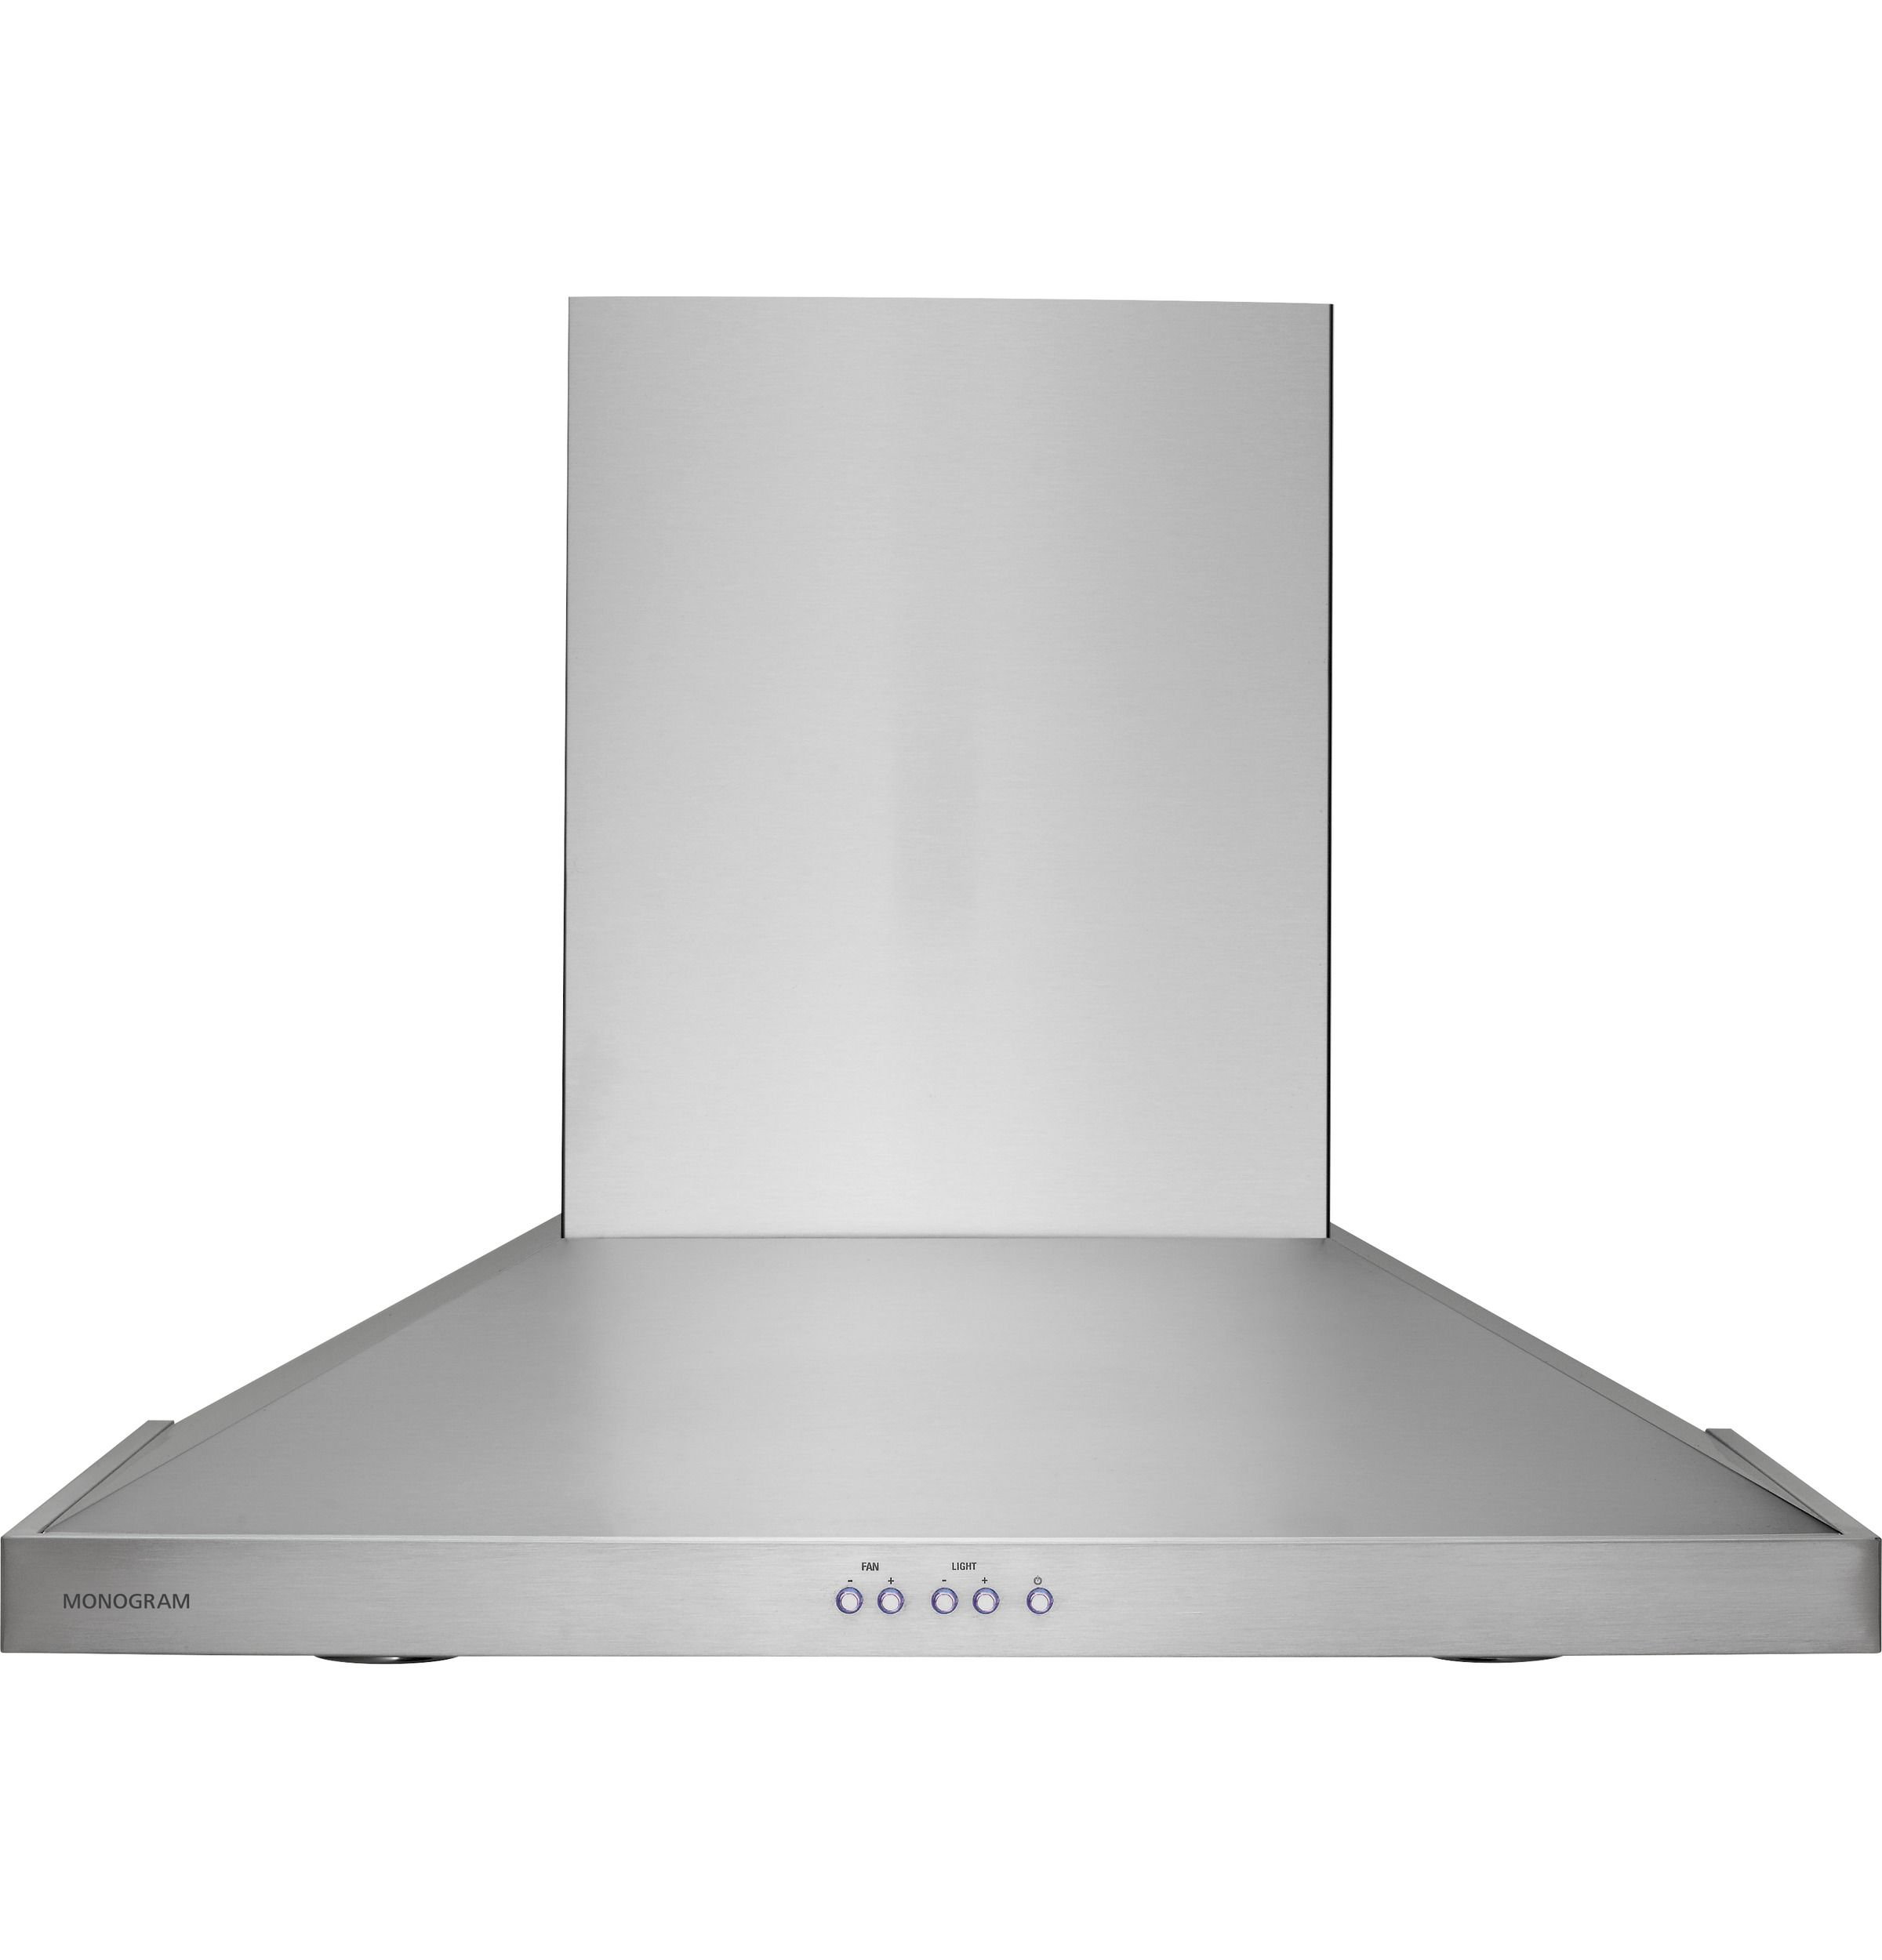 Zv830smss Monogram 30 Wall Mounted Vent Hood The Monogram Collection Monogram Appliances Vent Hood Ge Monogram Appliances